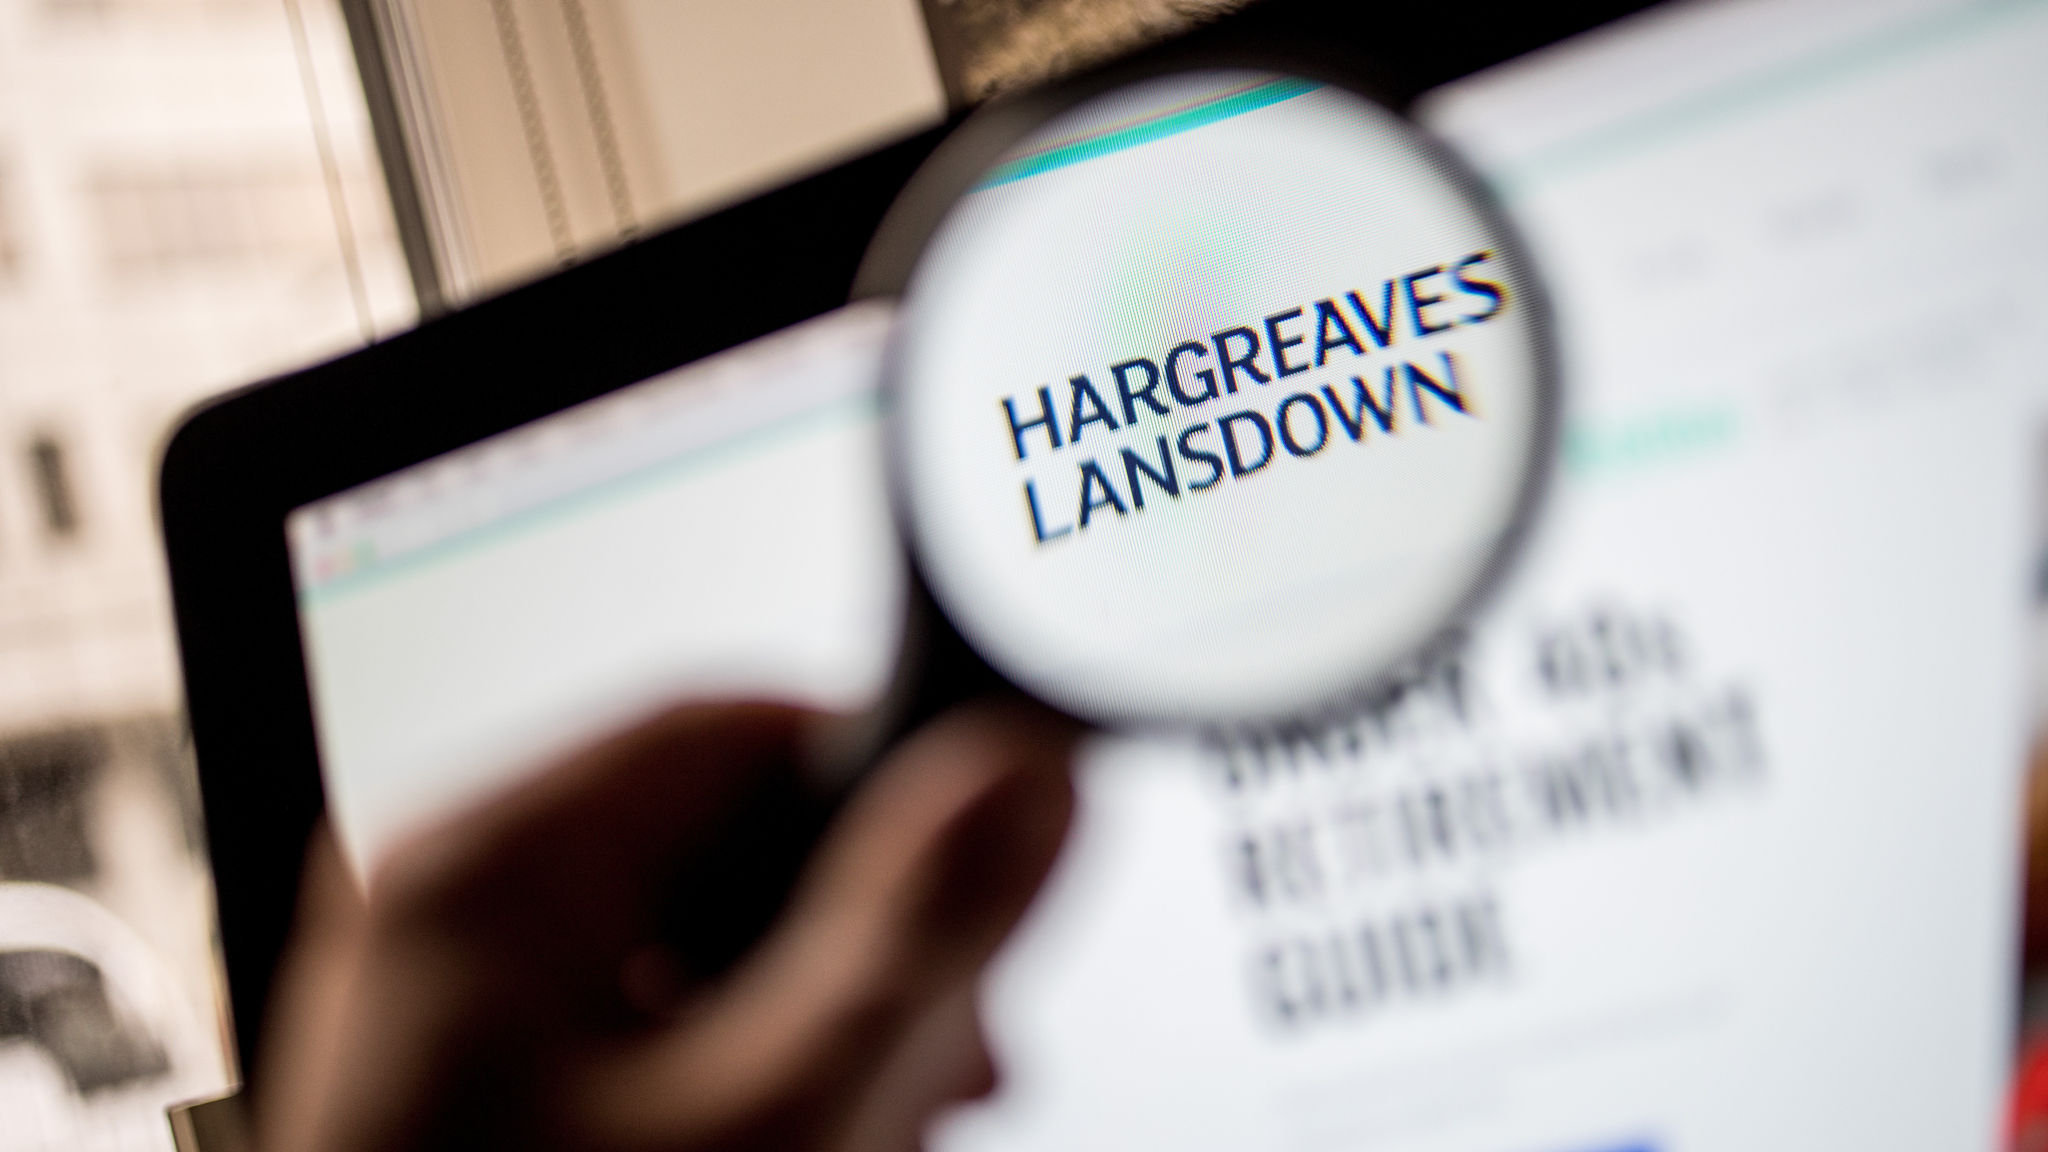 Hargreaves Lansdown shrugs off Woodford trouble